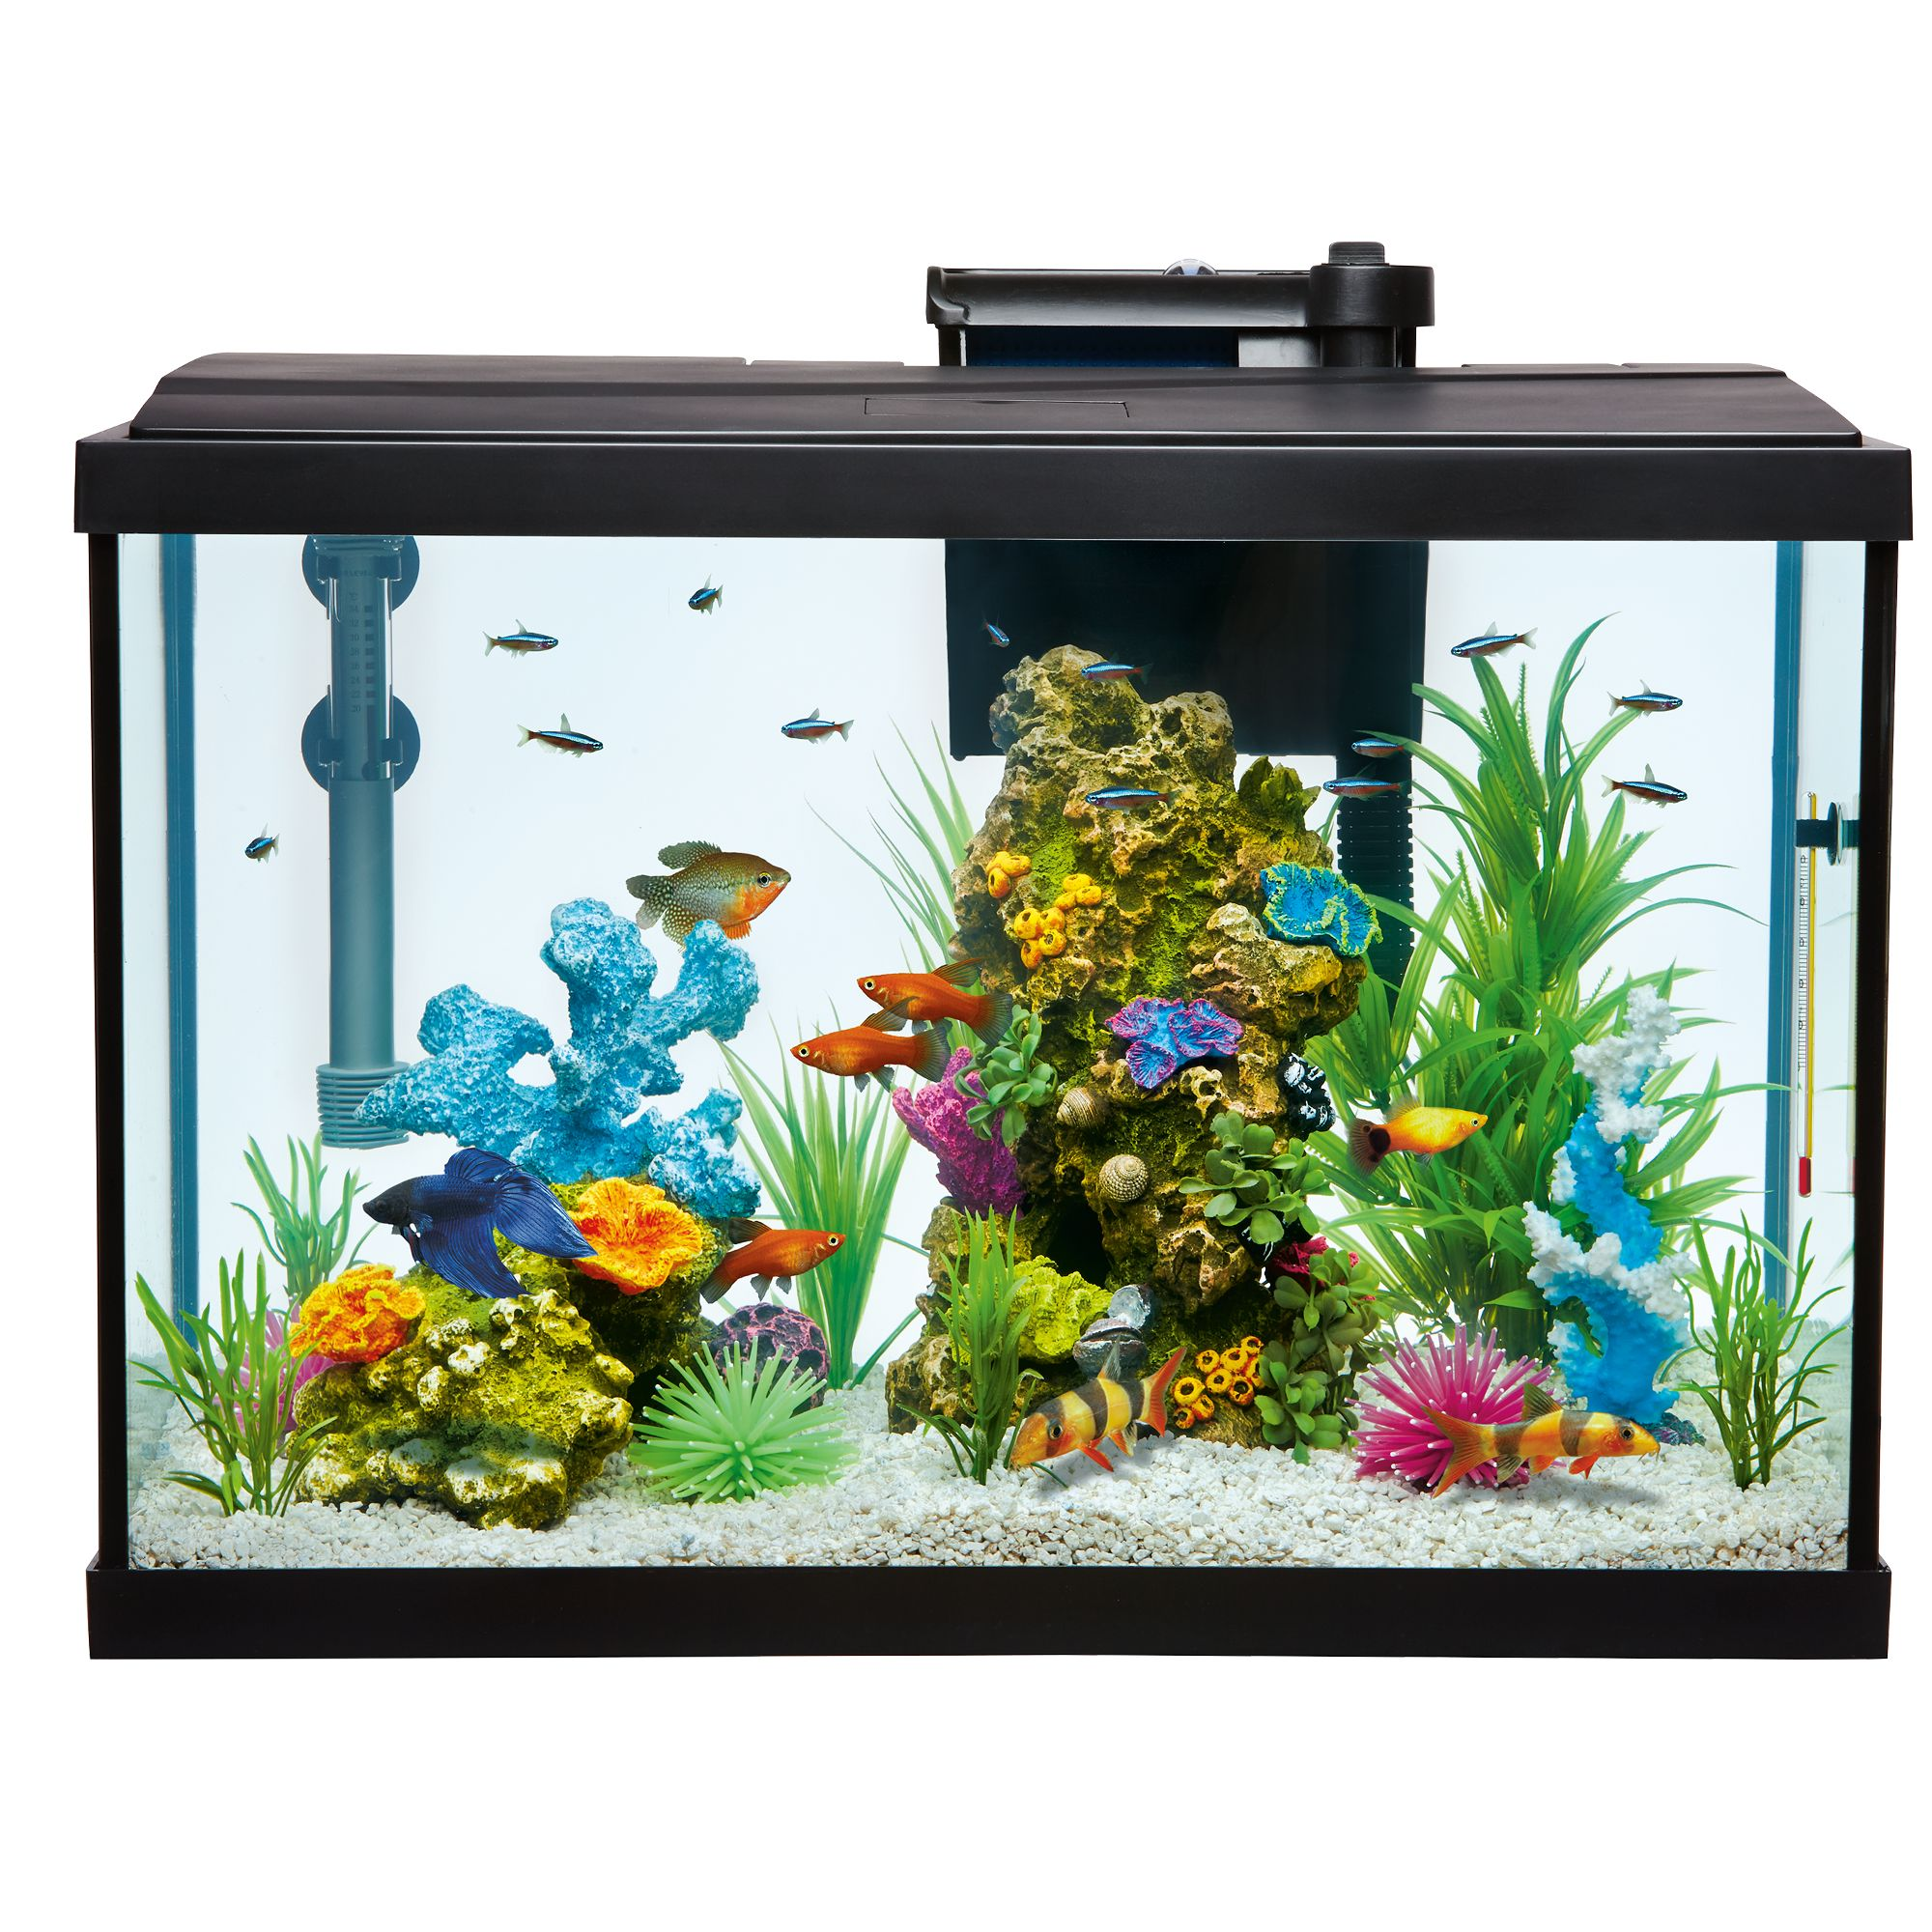 Gallon aquarium usa for 20 gallon fish tank size